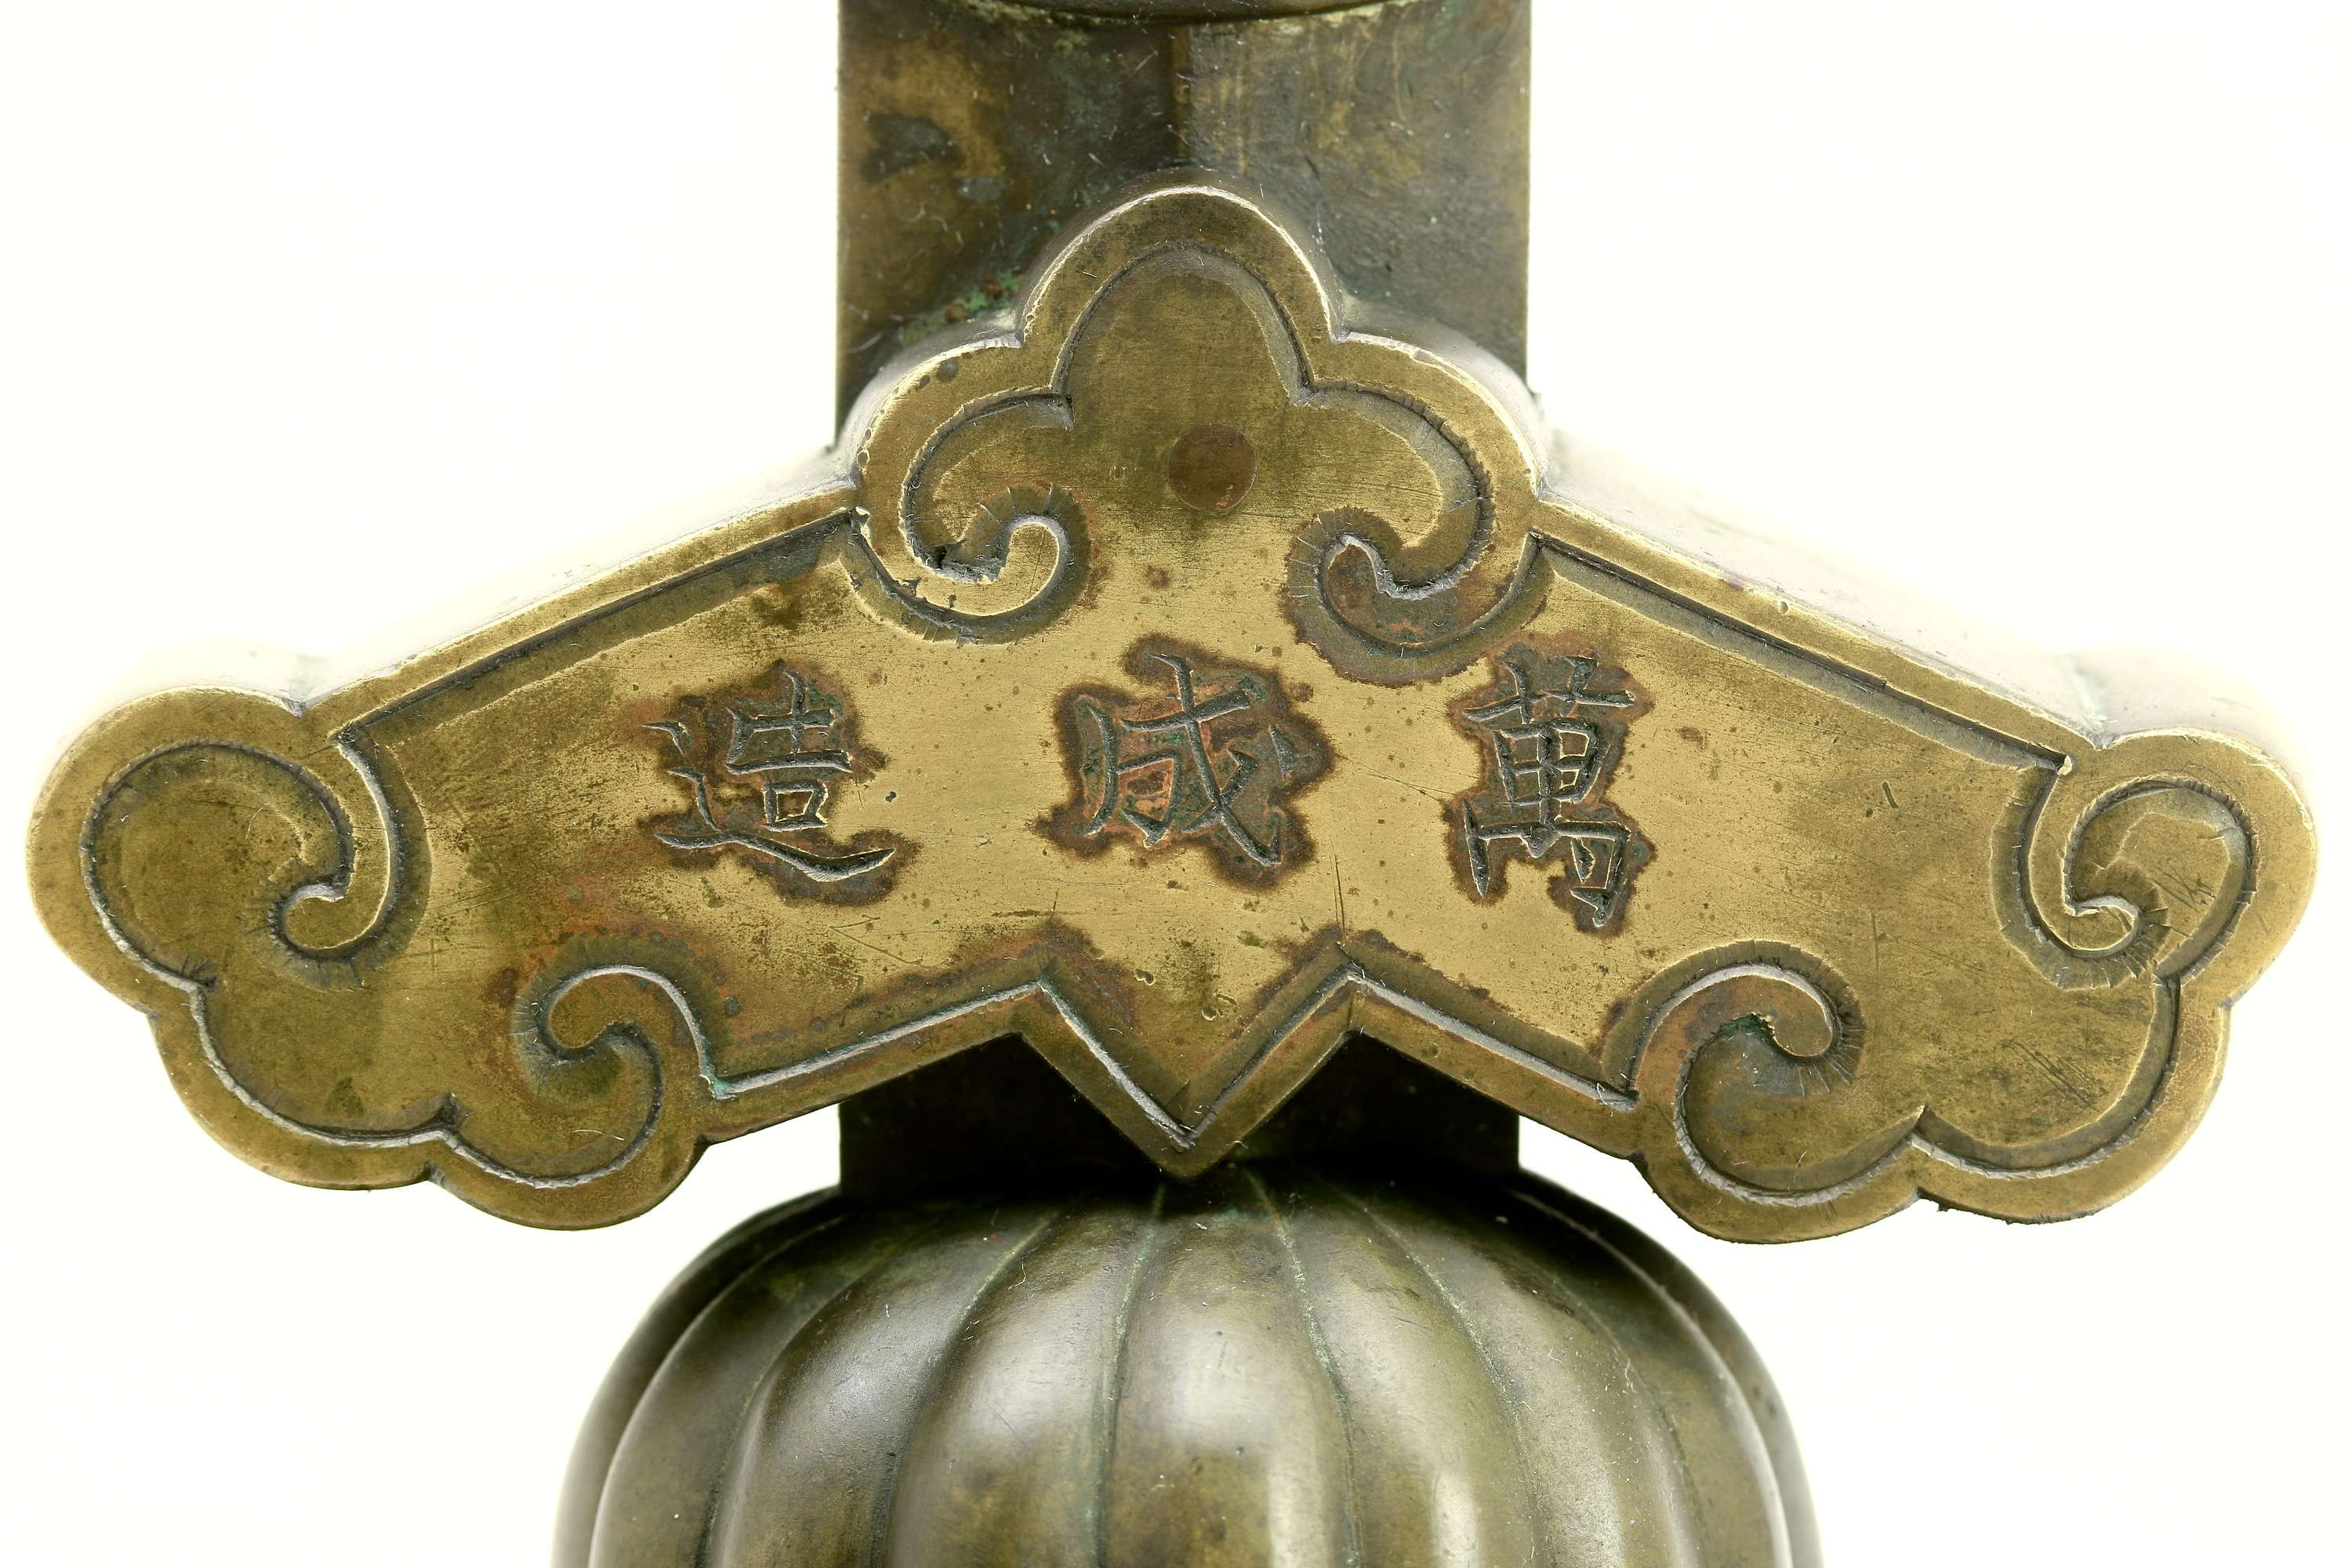 Chinese processional halberd, dated 1864